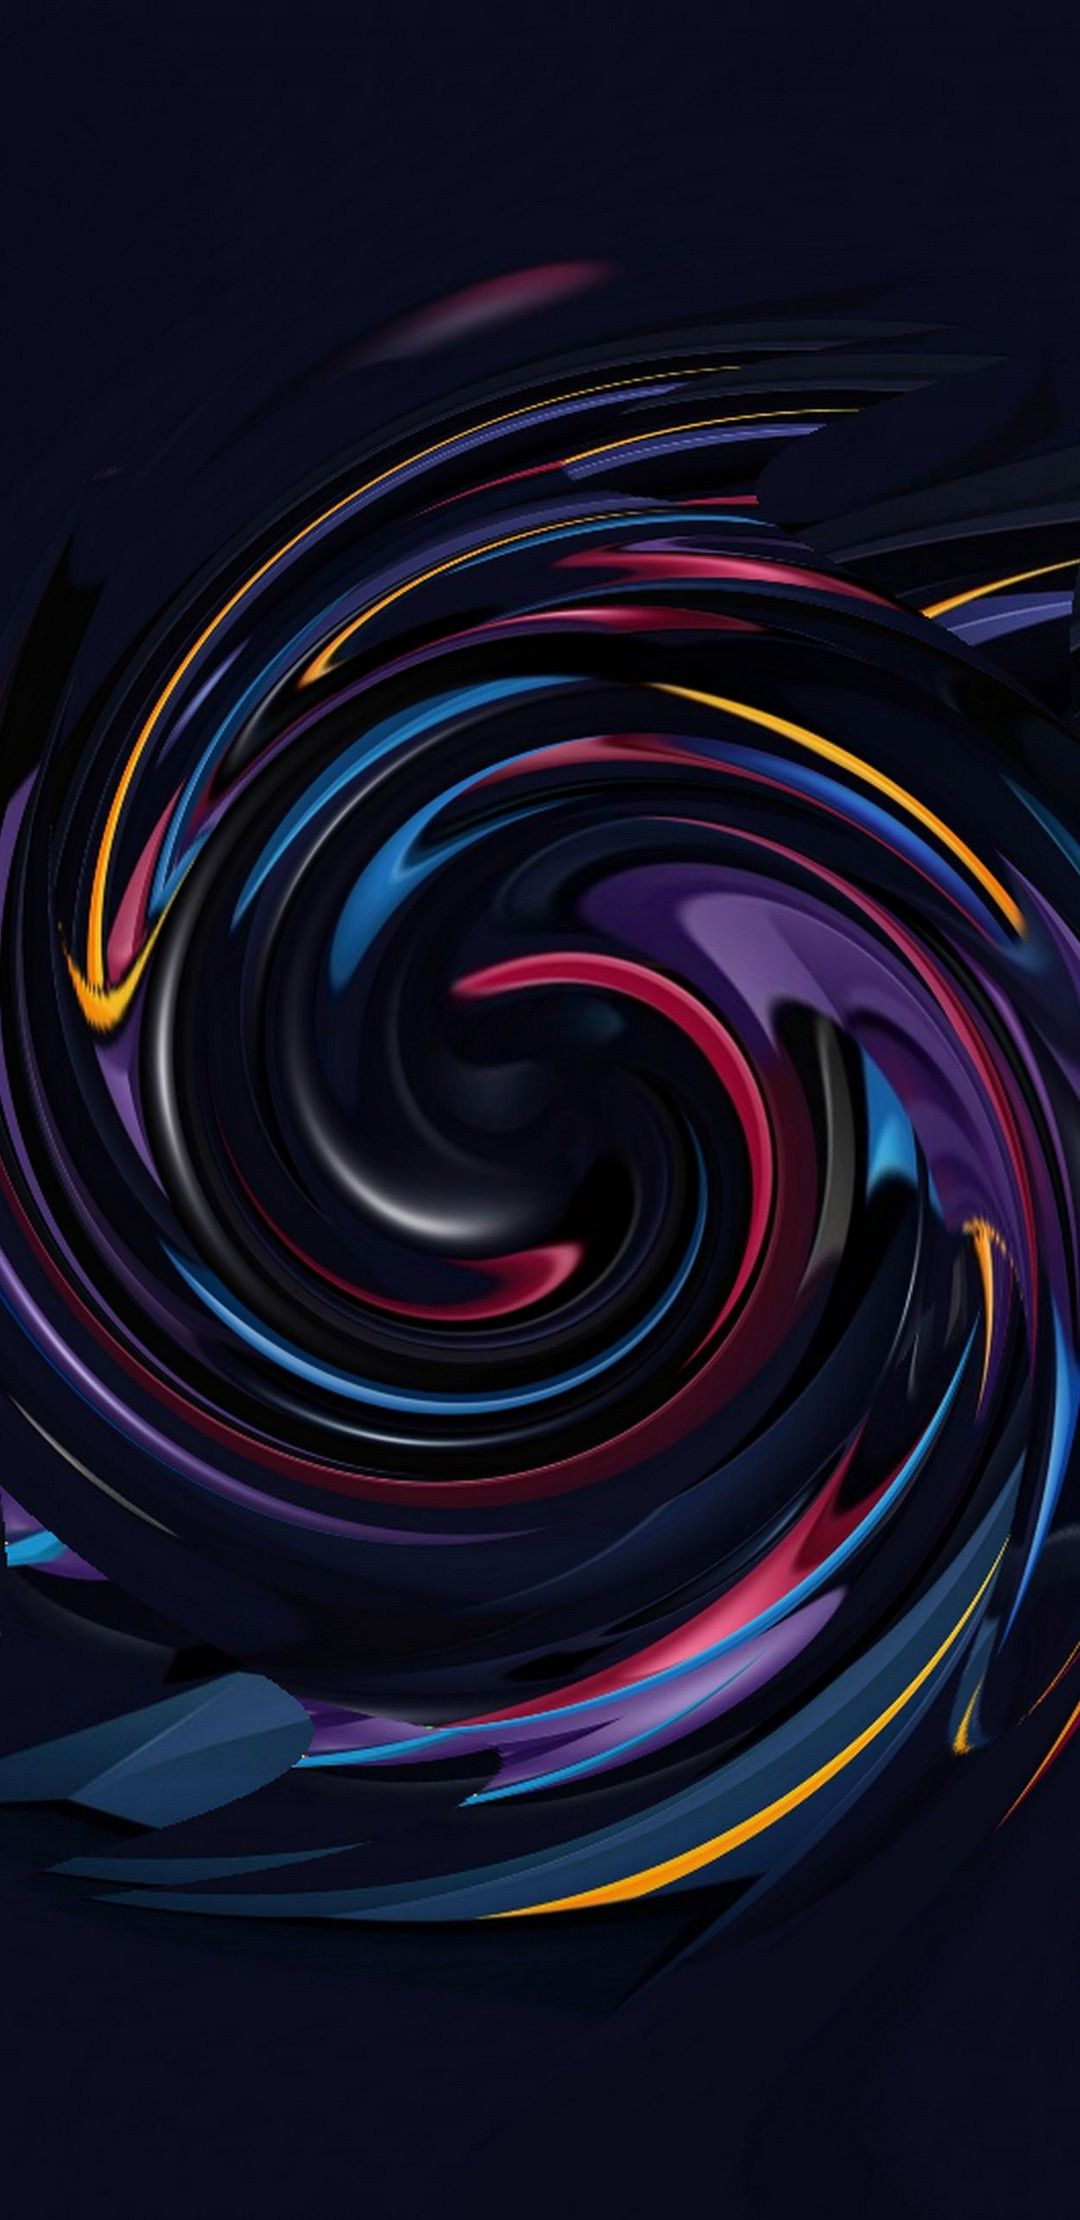 Abstract Black And Colourful Fluid Ink Spiral Colorful